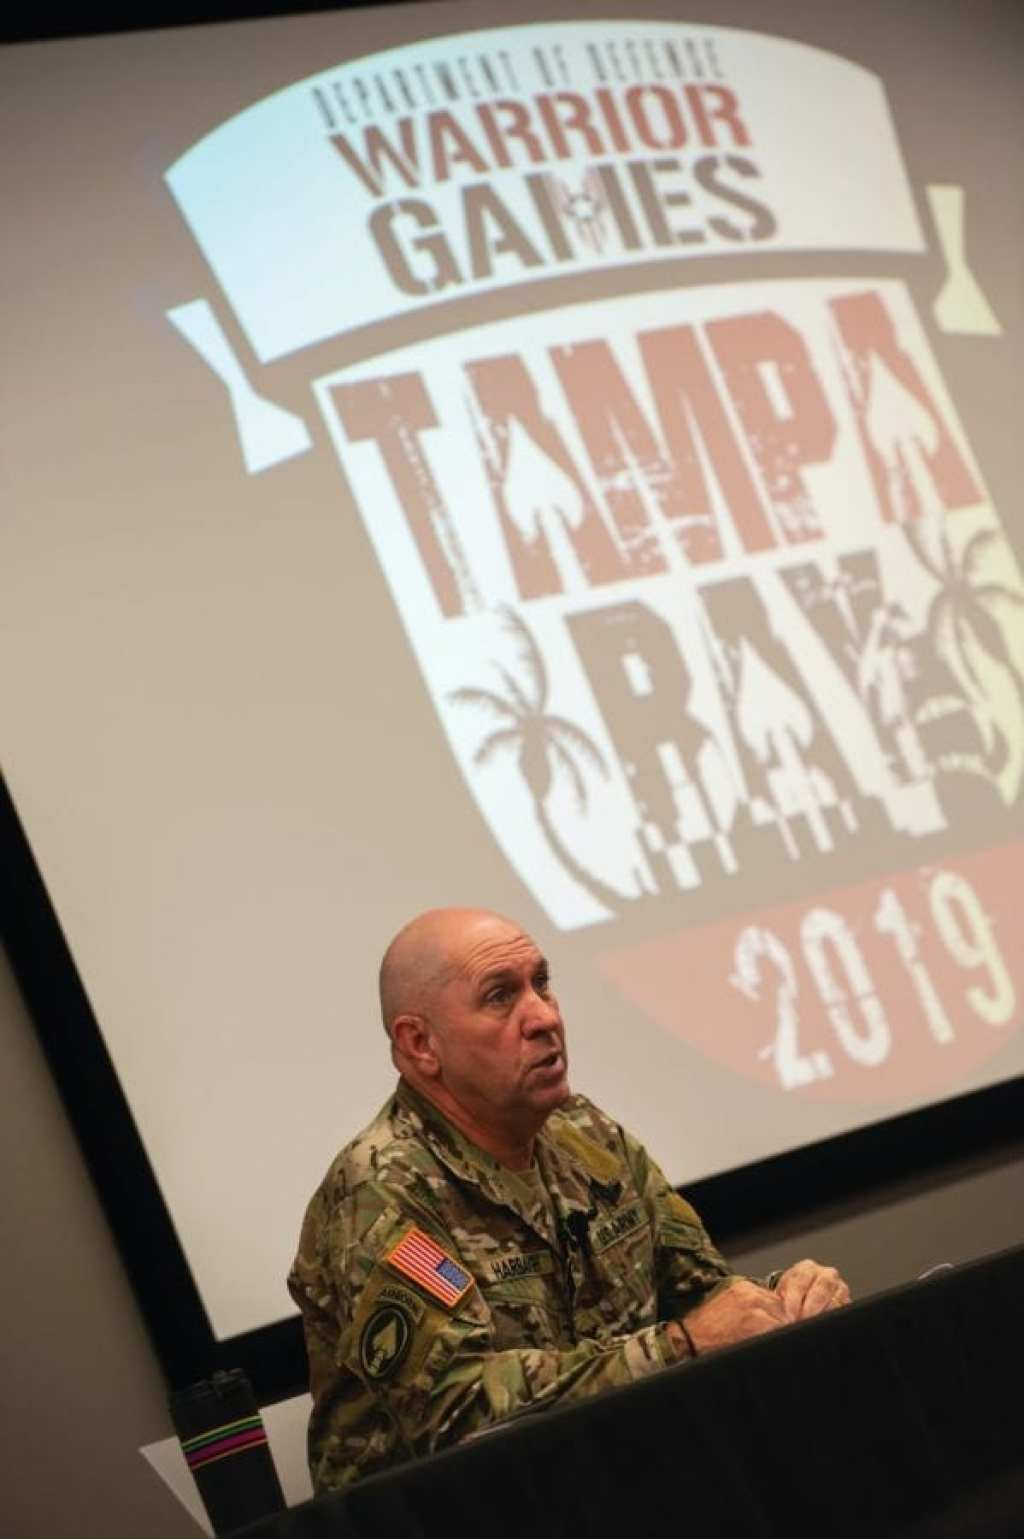 Army Col. Cary Harbaugh, U.S. Special Operations Command Warrior Games 2019 director, briefs local media on the 2019 DoD Warrior Games in Tampa, Florida, Aug. 6, 2018. In the games, scheduled from June 21-30, 2019, more than 300 athletes will compete in 14 events located in downtown Tampa and surrounding areas